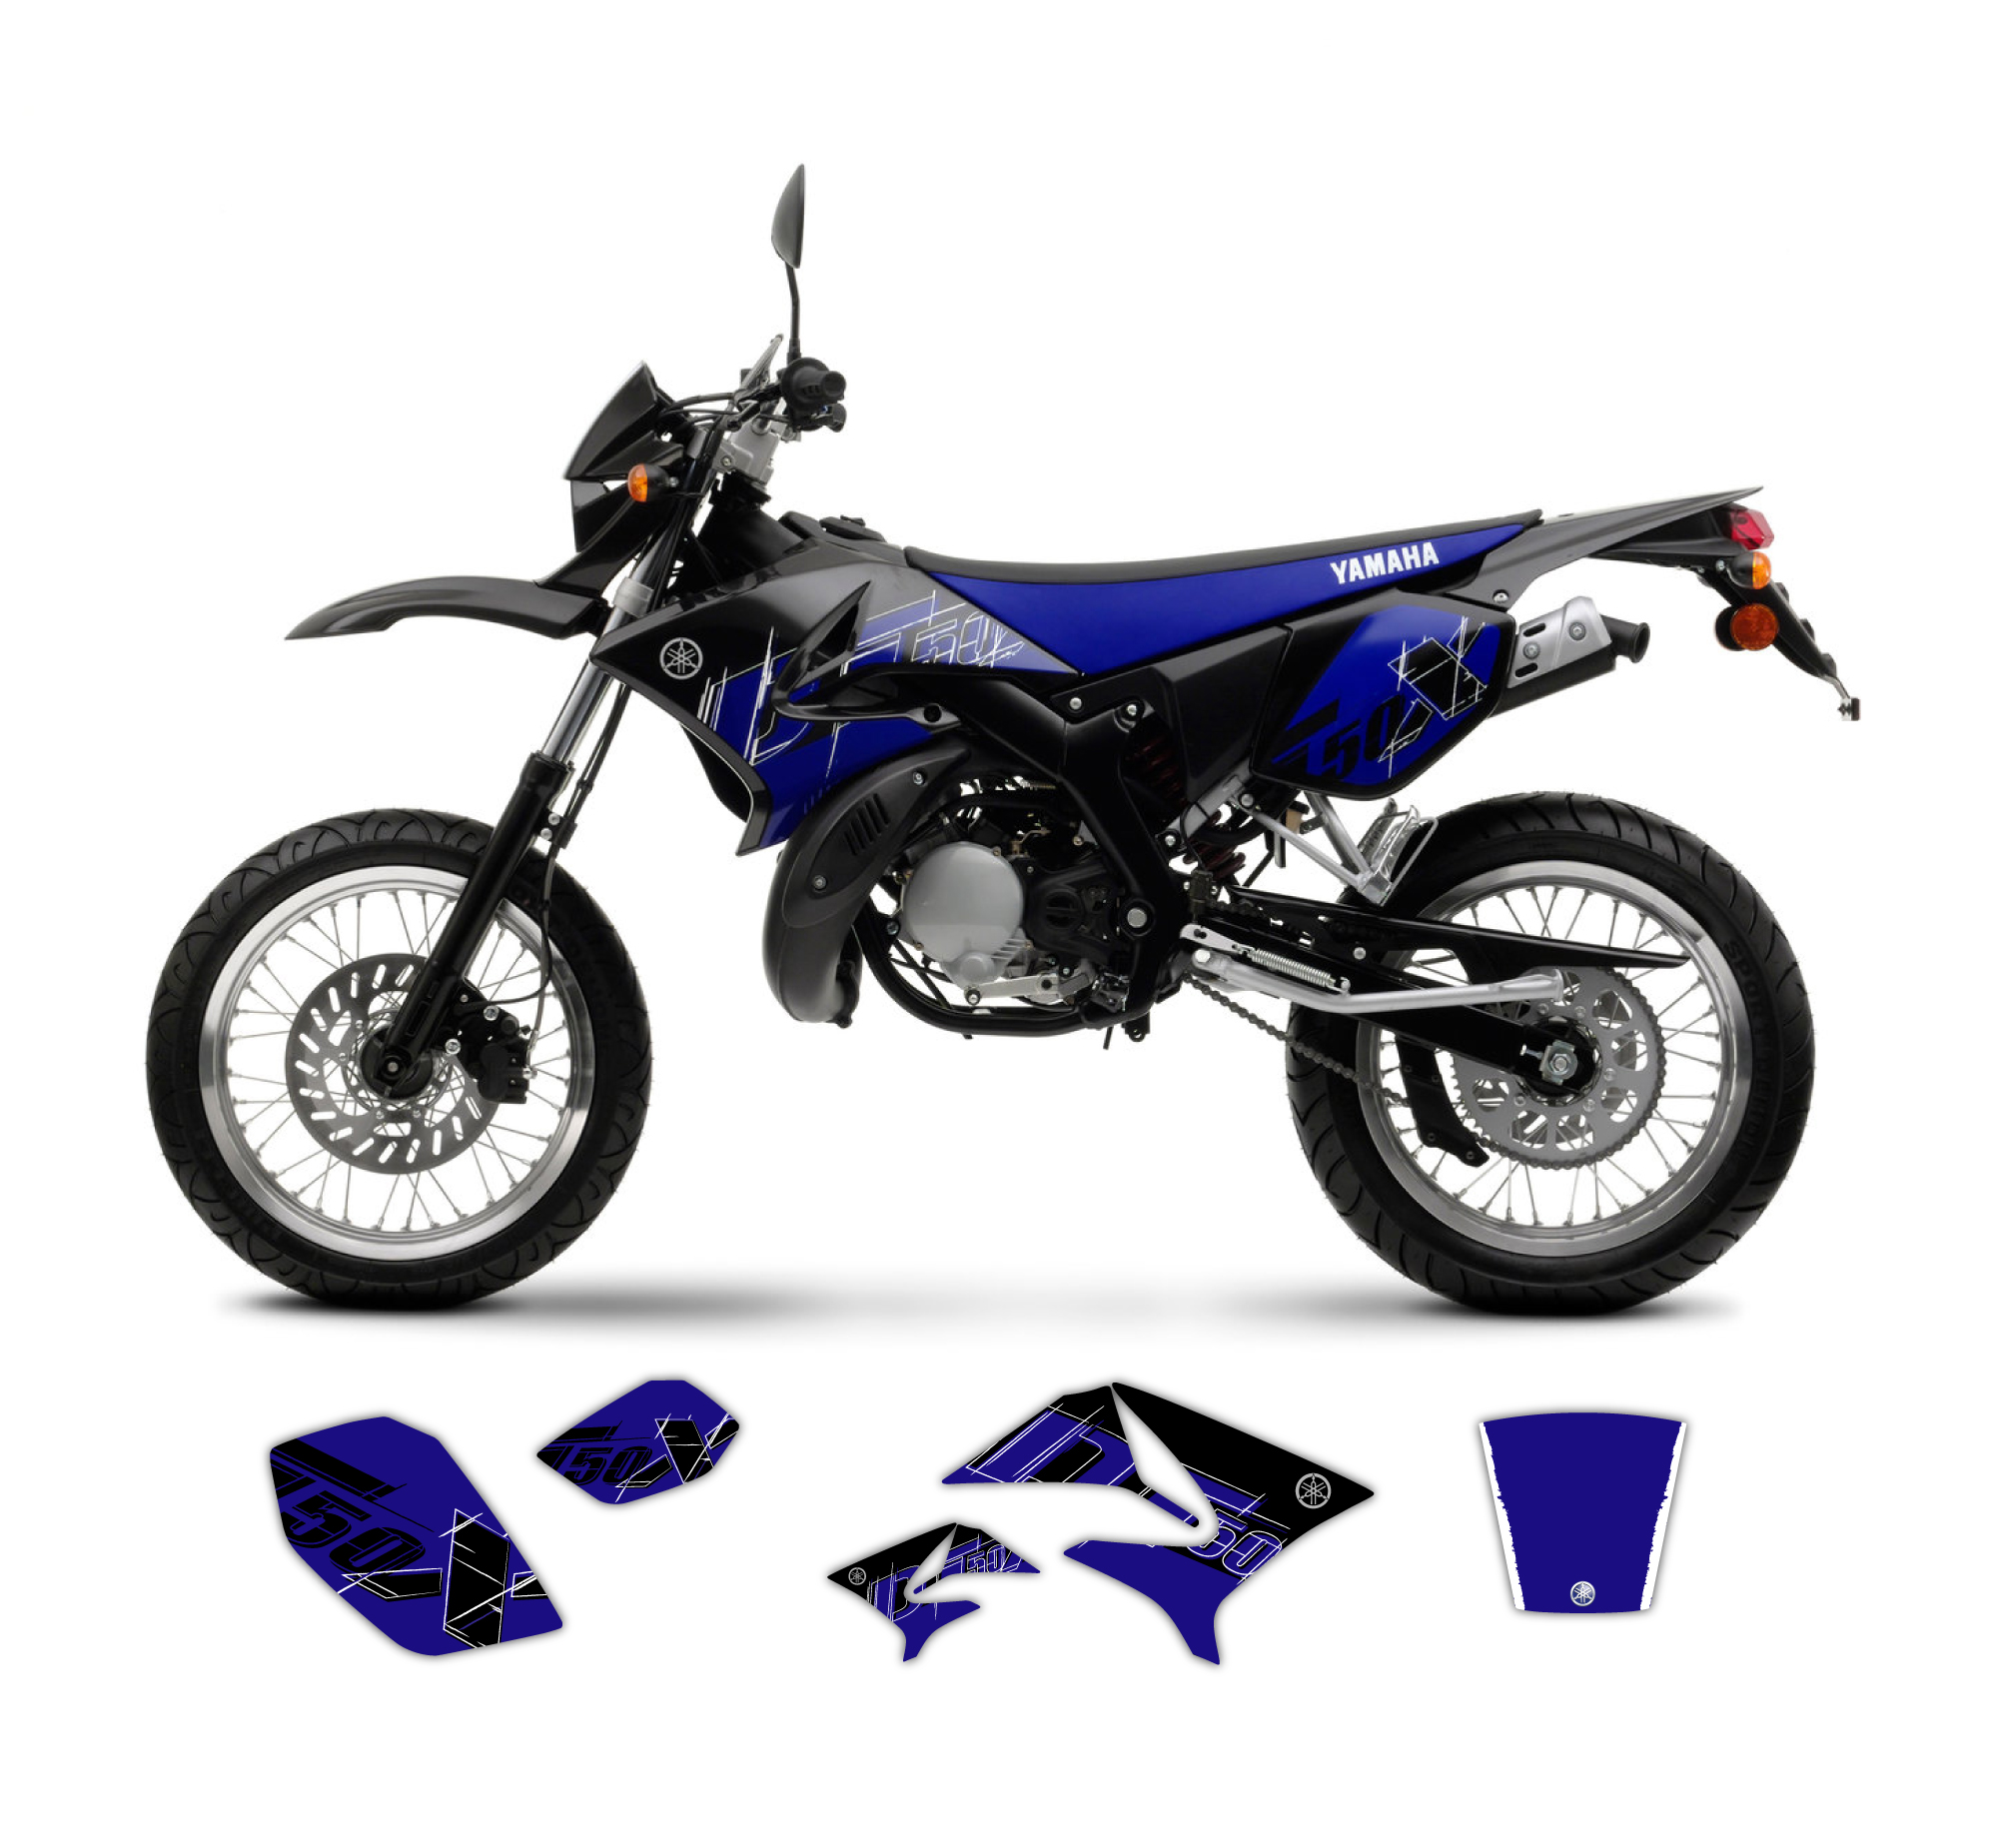 yamaha dt 50 x r replica graphics kit 2008 model tmx. Black Bedroom Furniture Sets. Home Design Ideas